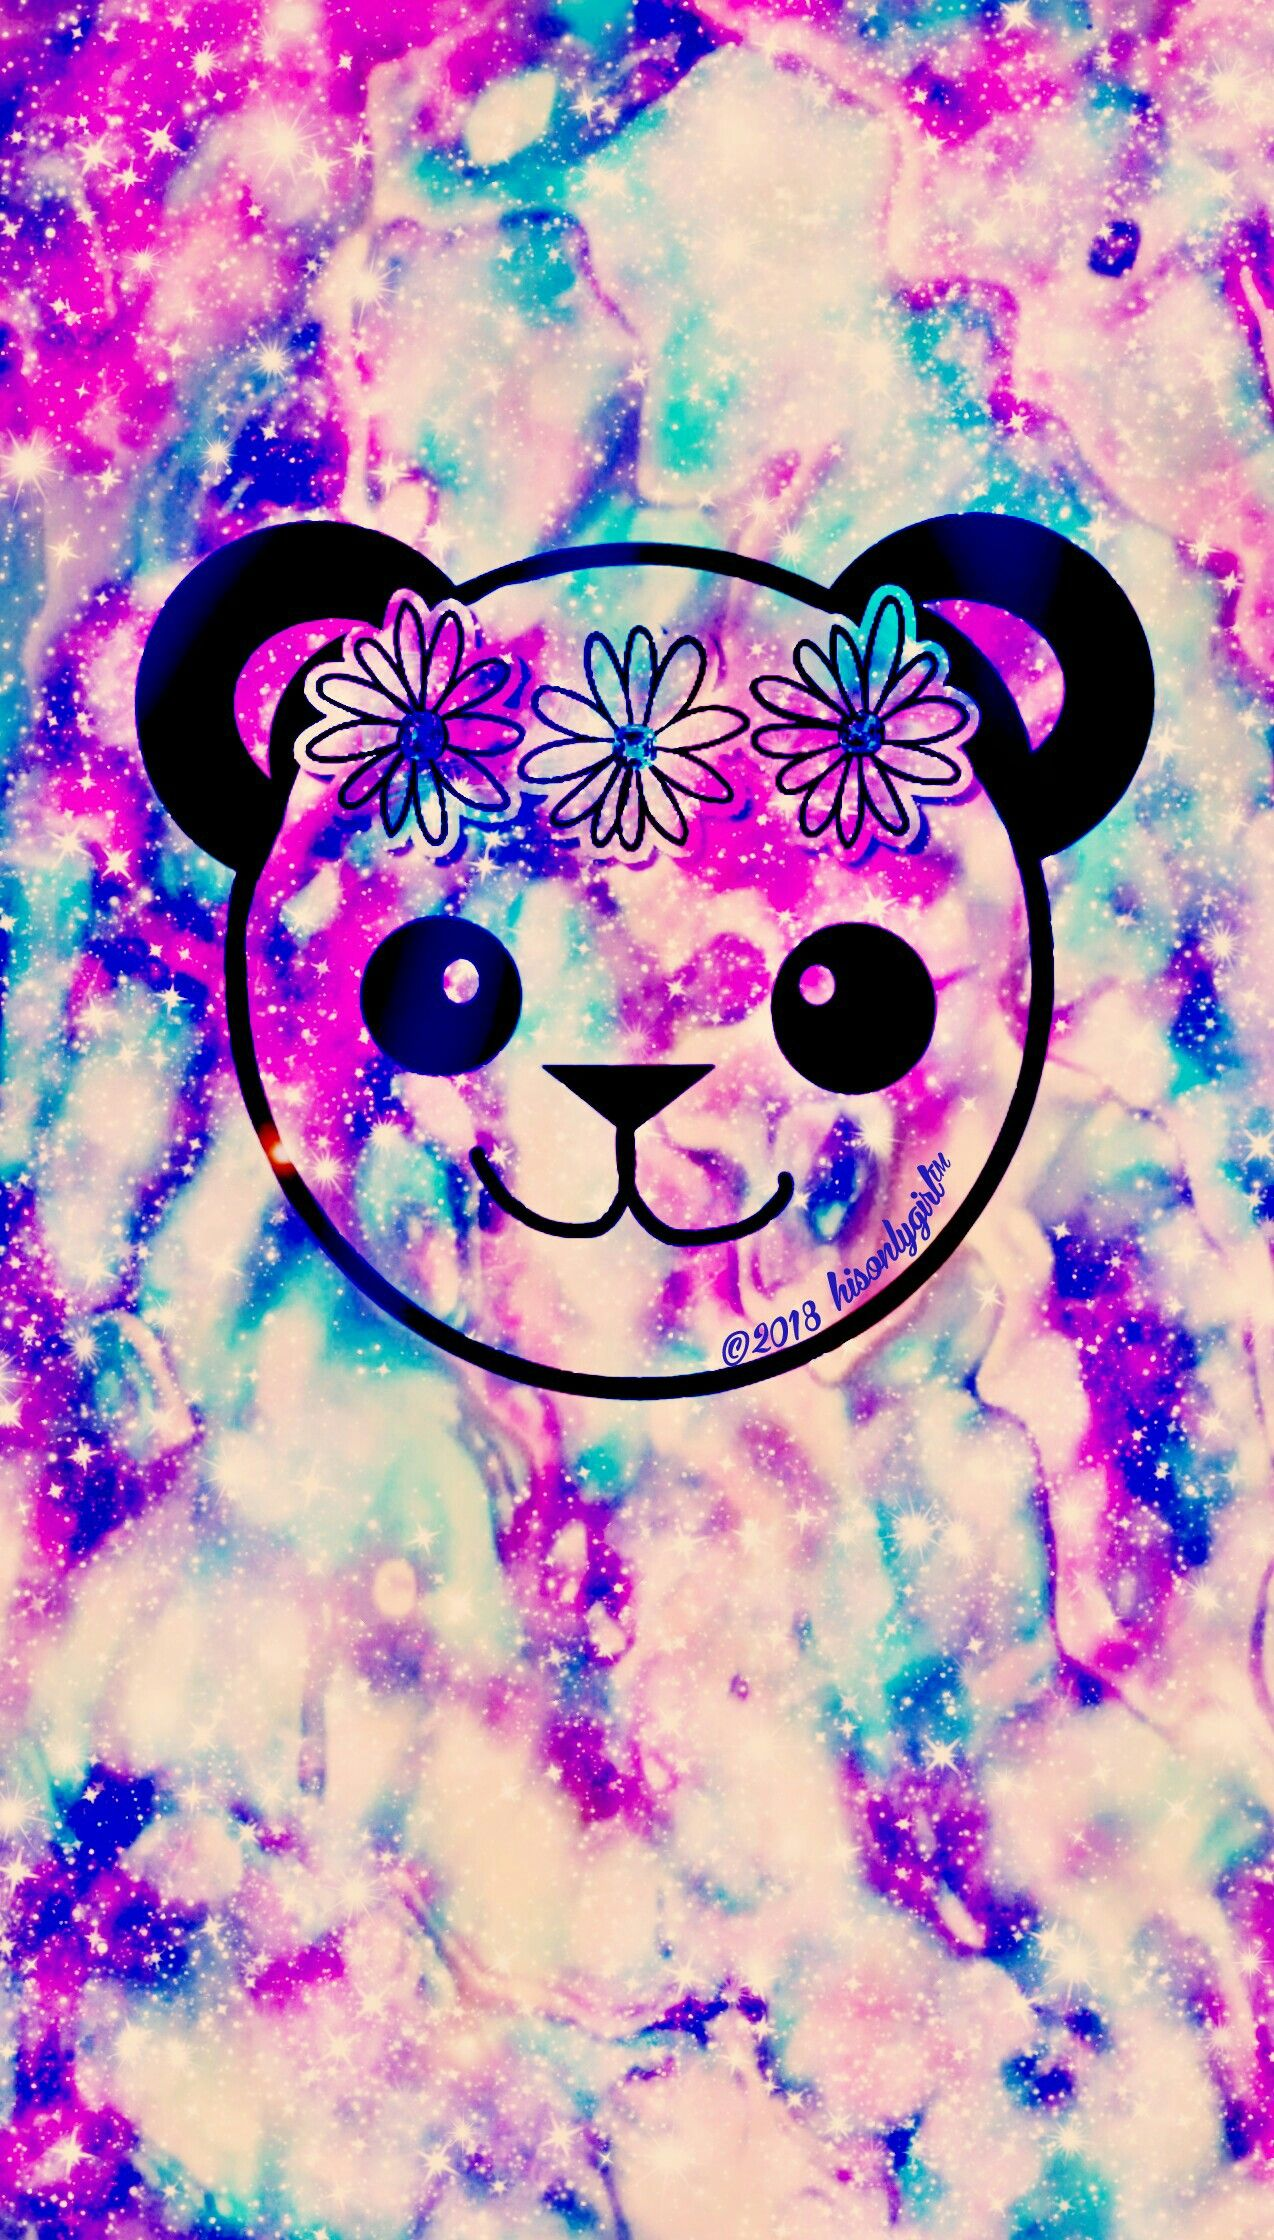 Grunge Panda Galaxy Android Iphone Wallpaper I Created For The App Cocoppa Galaxy Space Hisonlygir Cute Lockscreens Butterfly Wallpaper Glitter Wallpaper